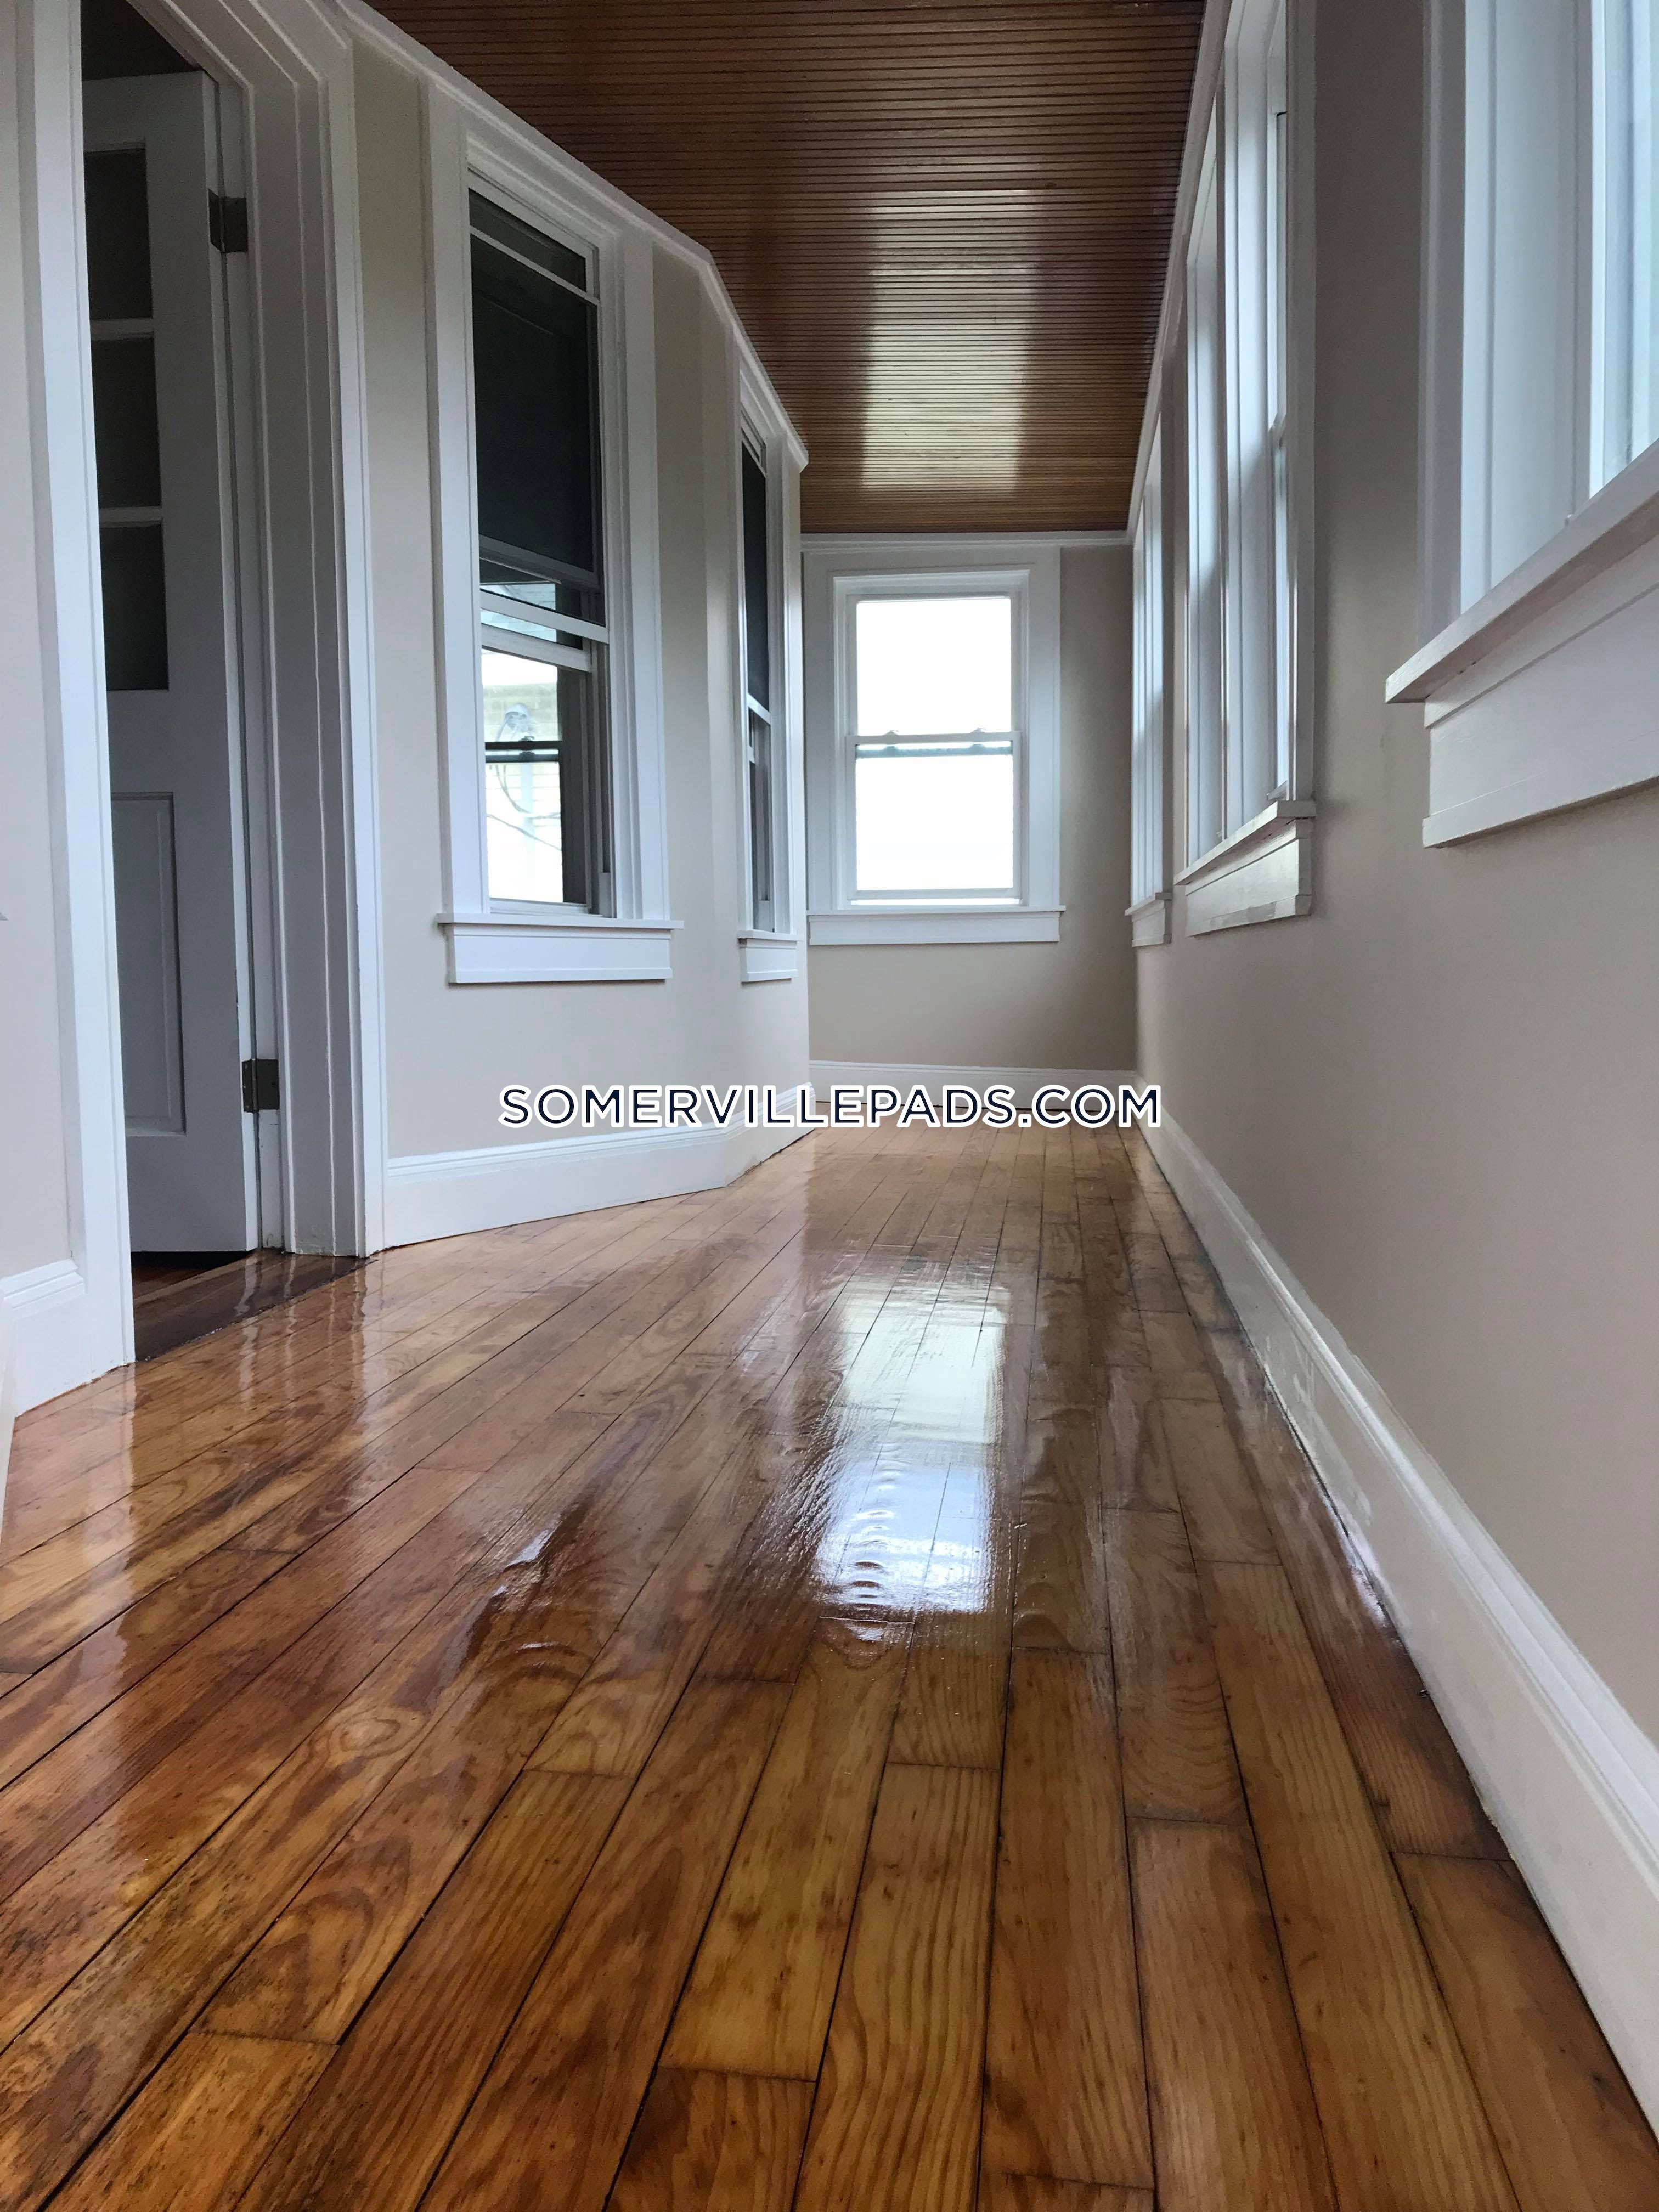 1-bed-1-bath-somerville-tufts-2850-445916